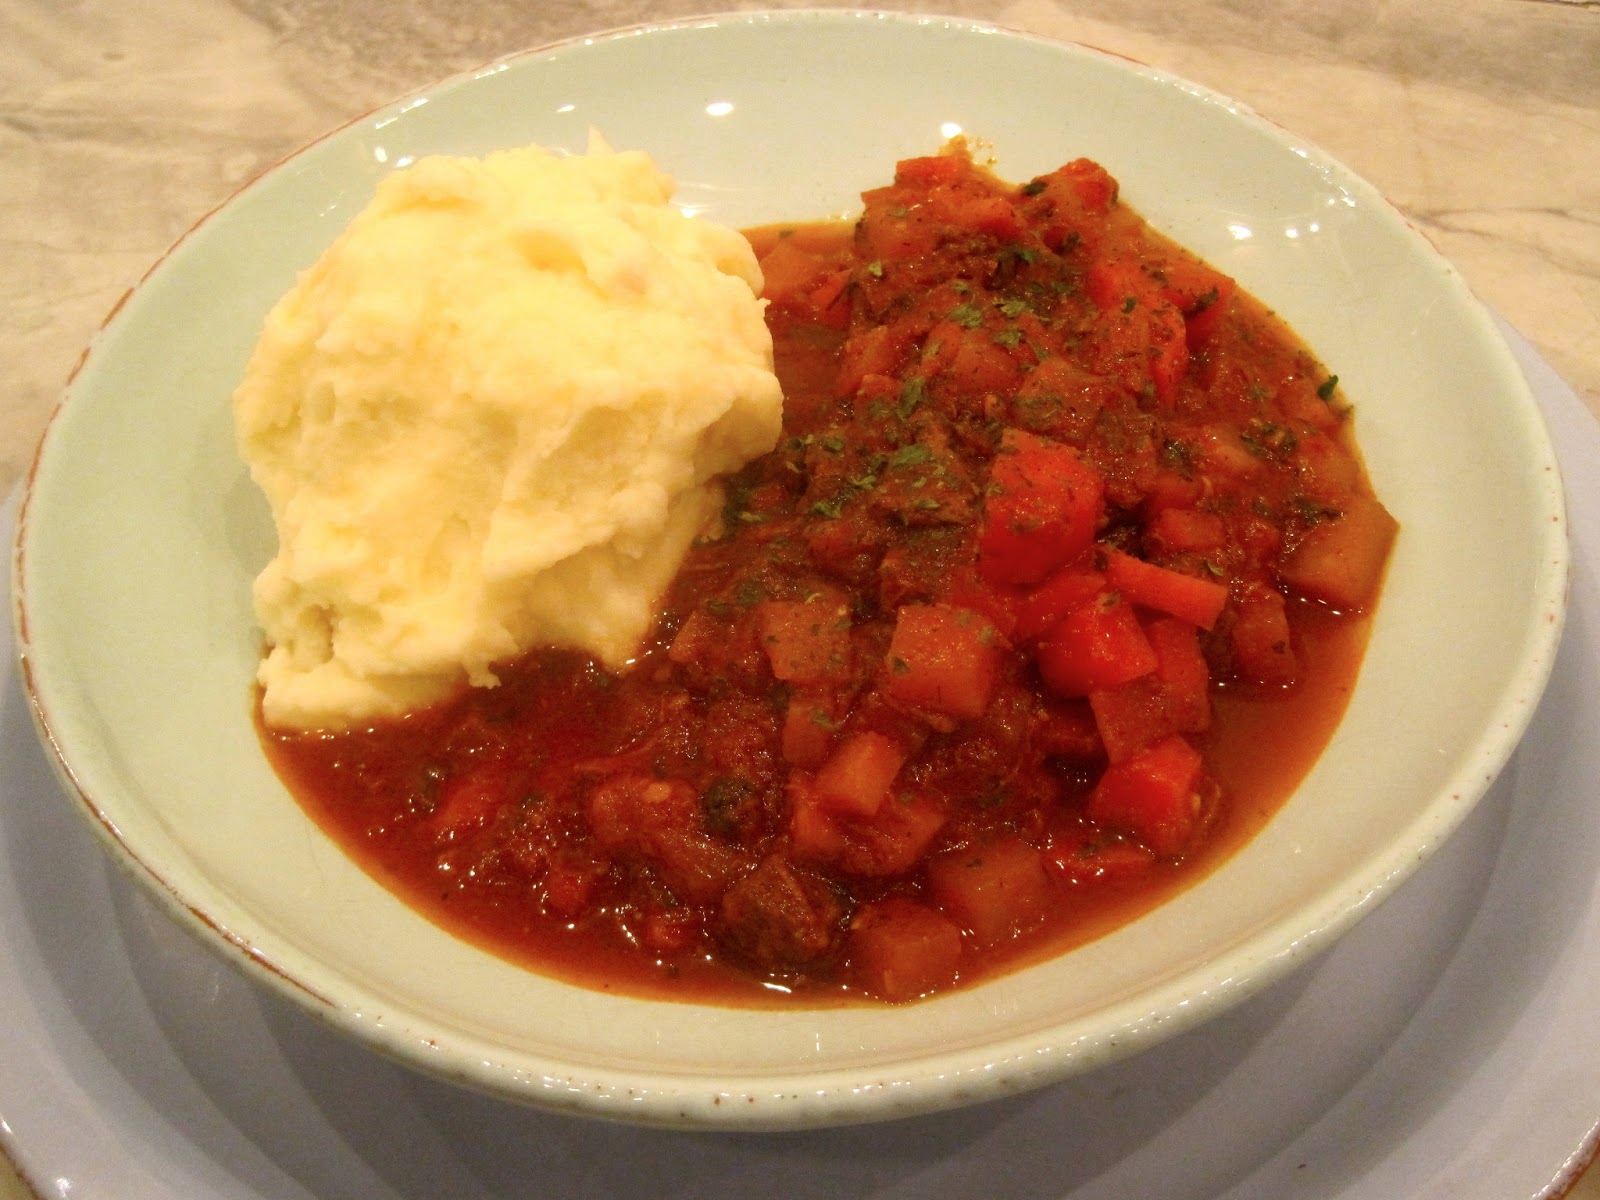 The Wooden Spoon Diaries: PW's Sunday Night Stew